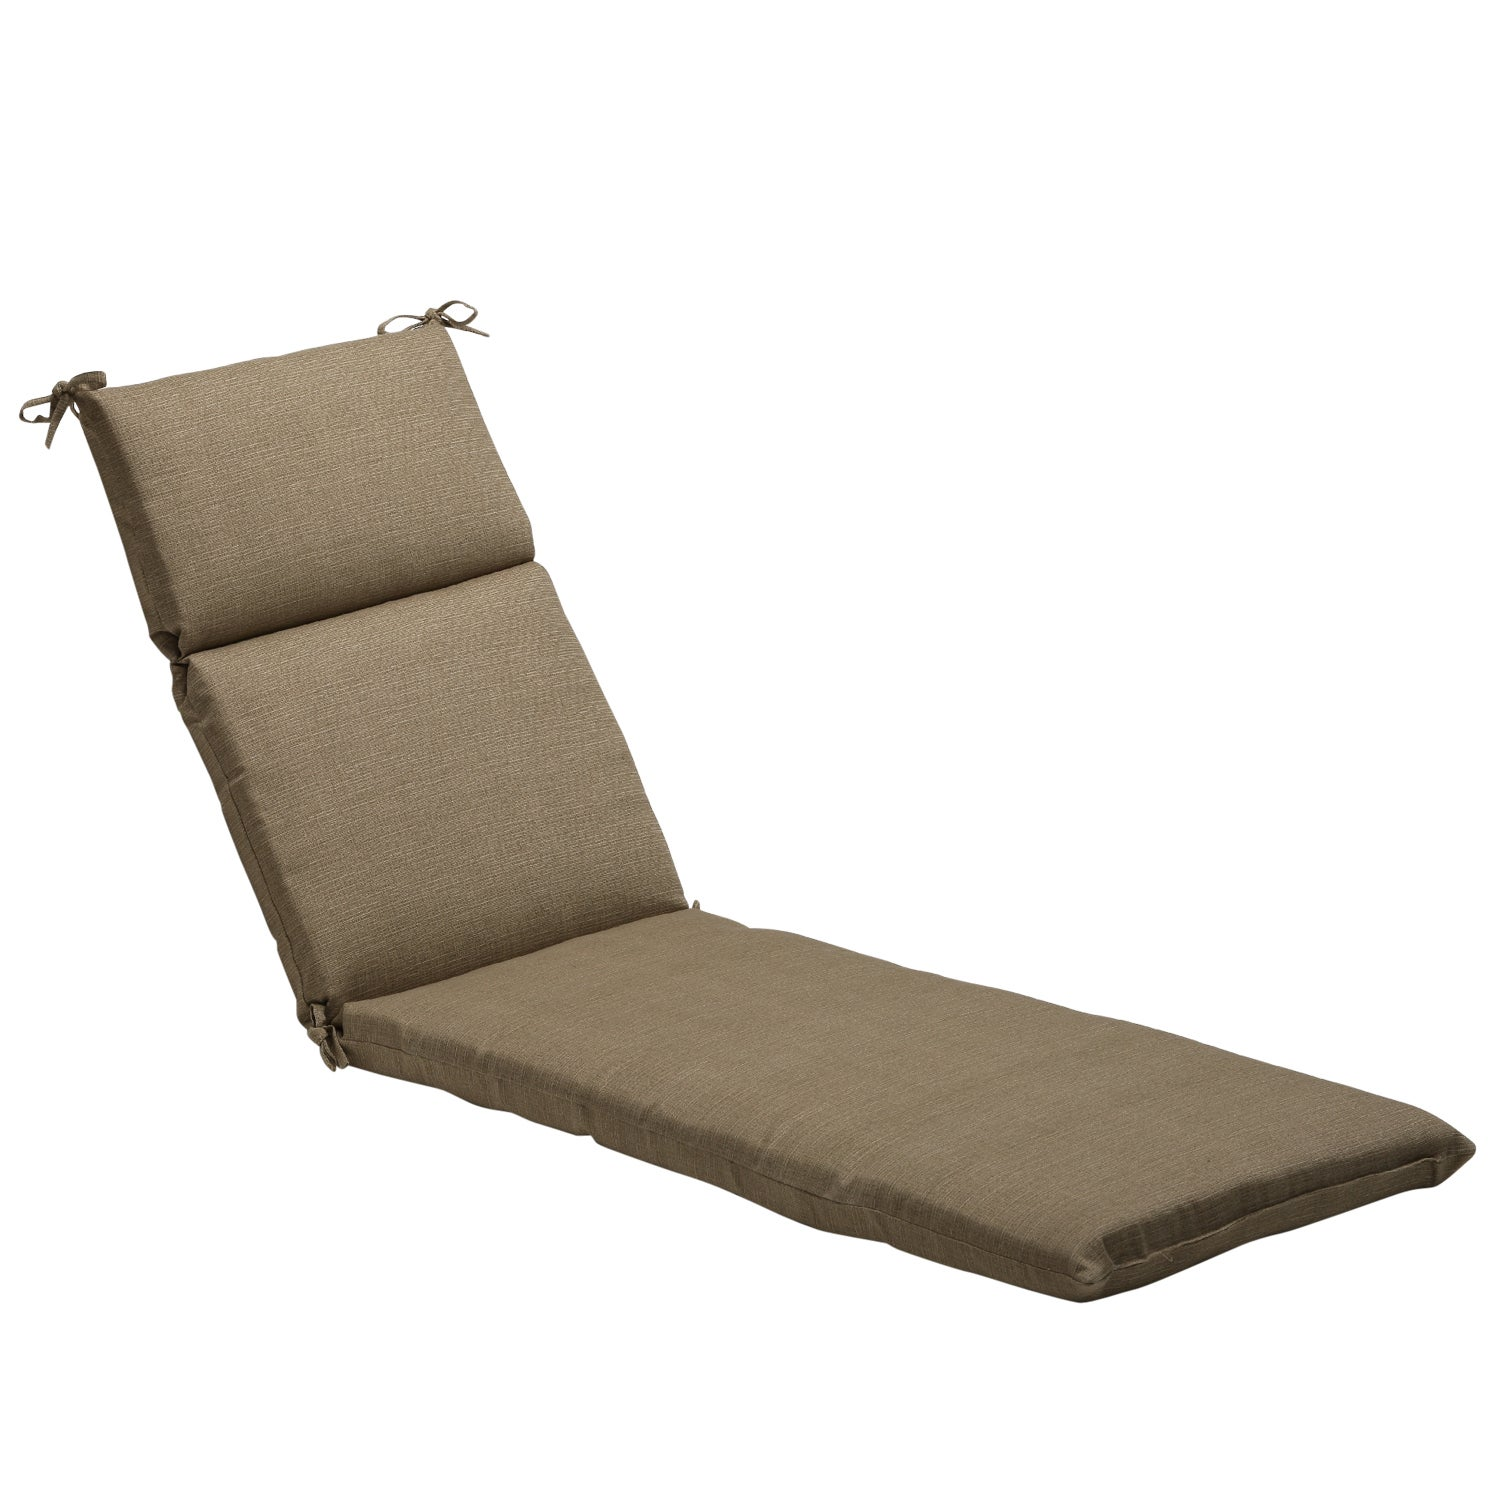 Solid taupe textured outdoor chaise lounge cushion for Chaise cushion sale